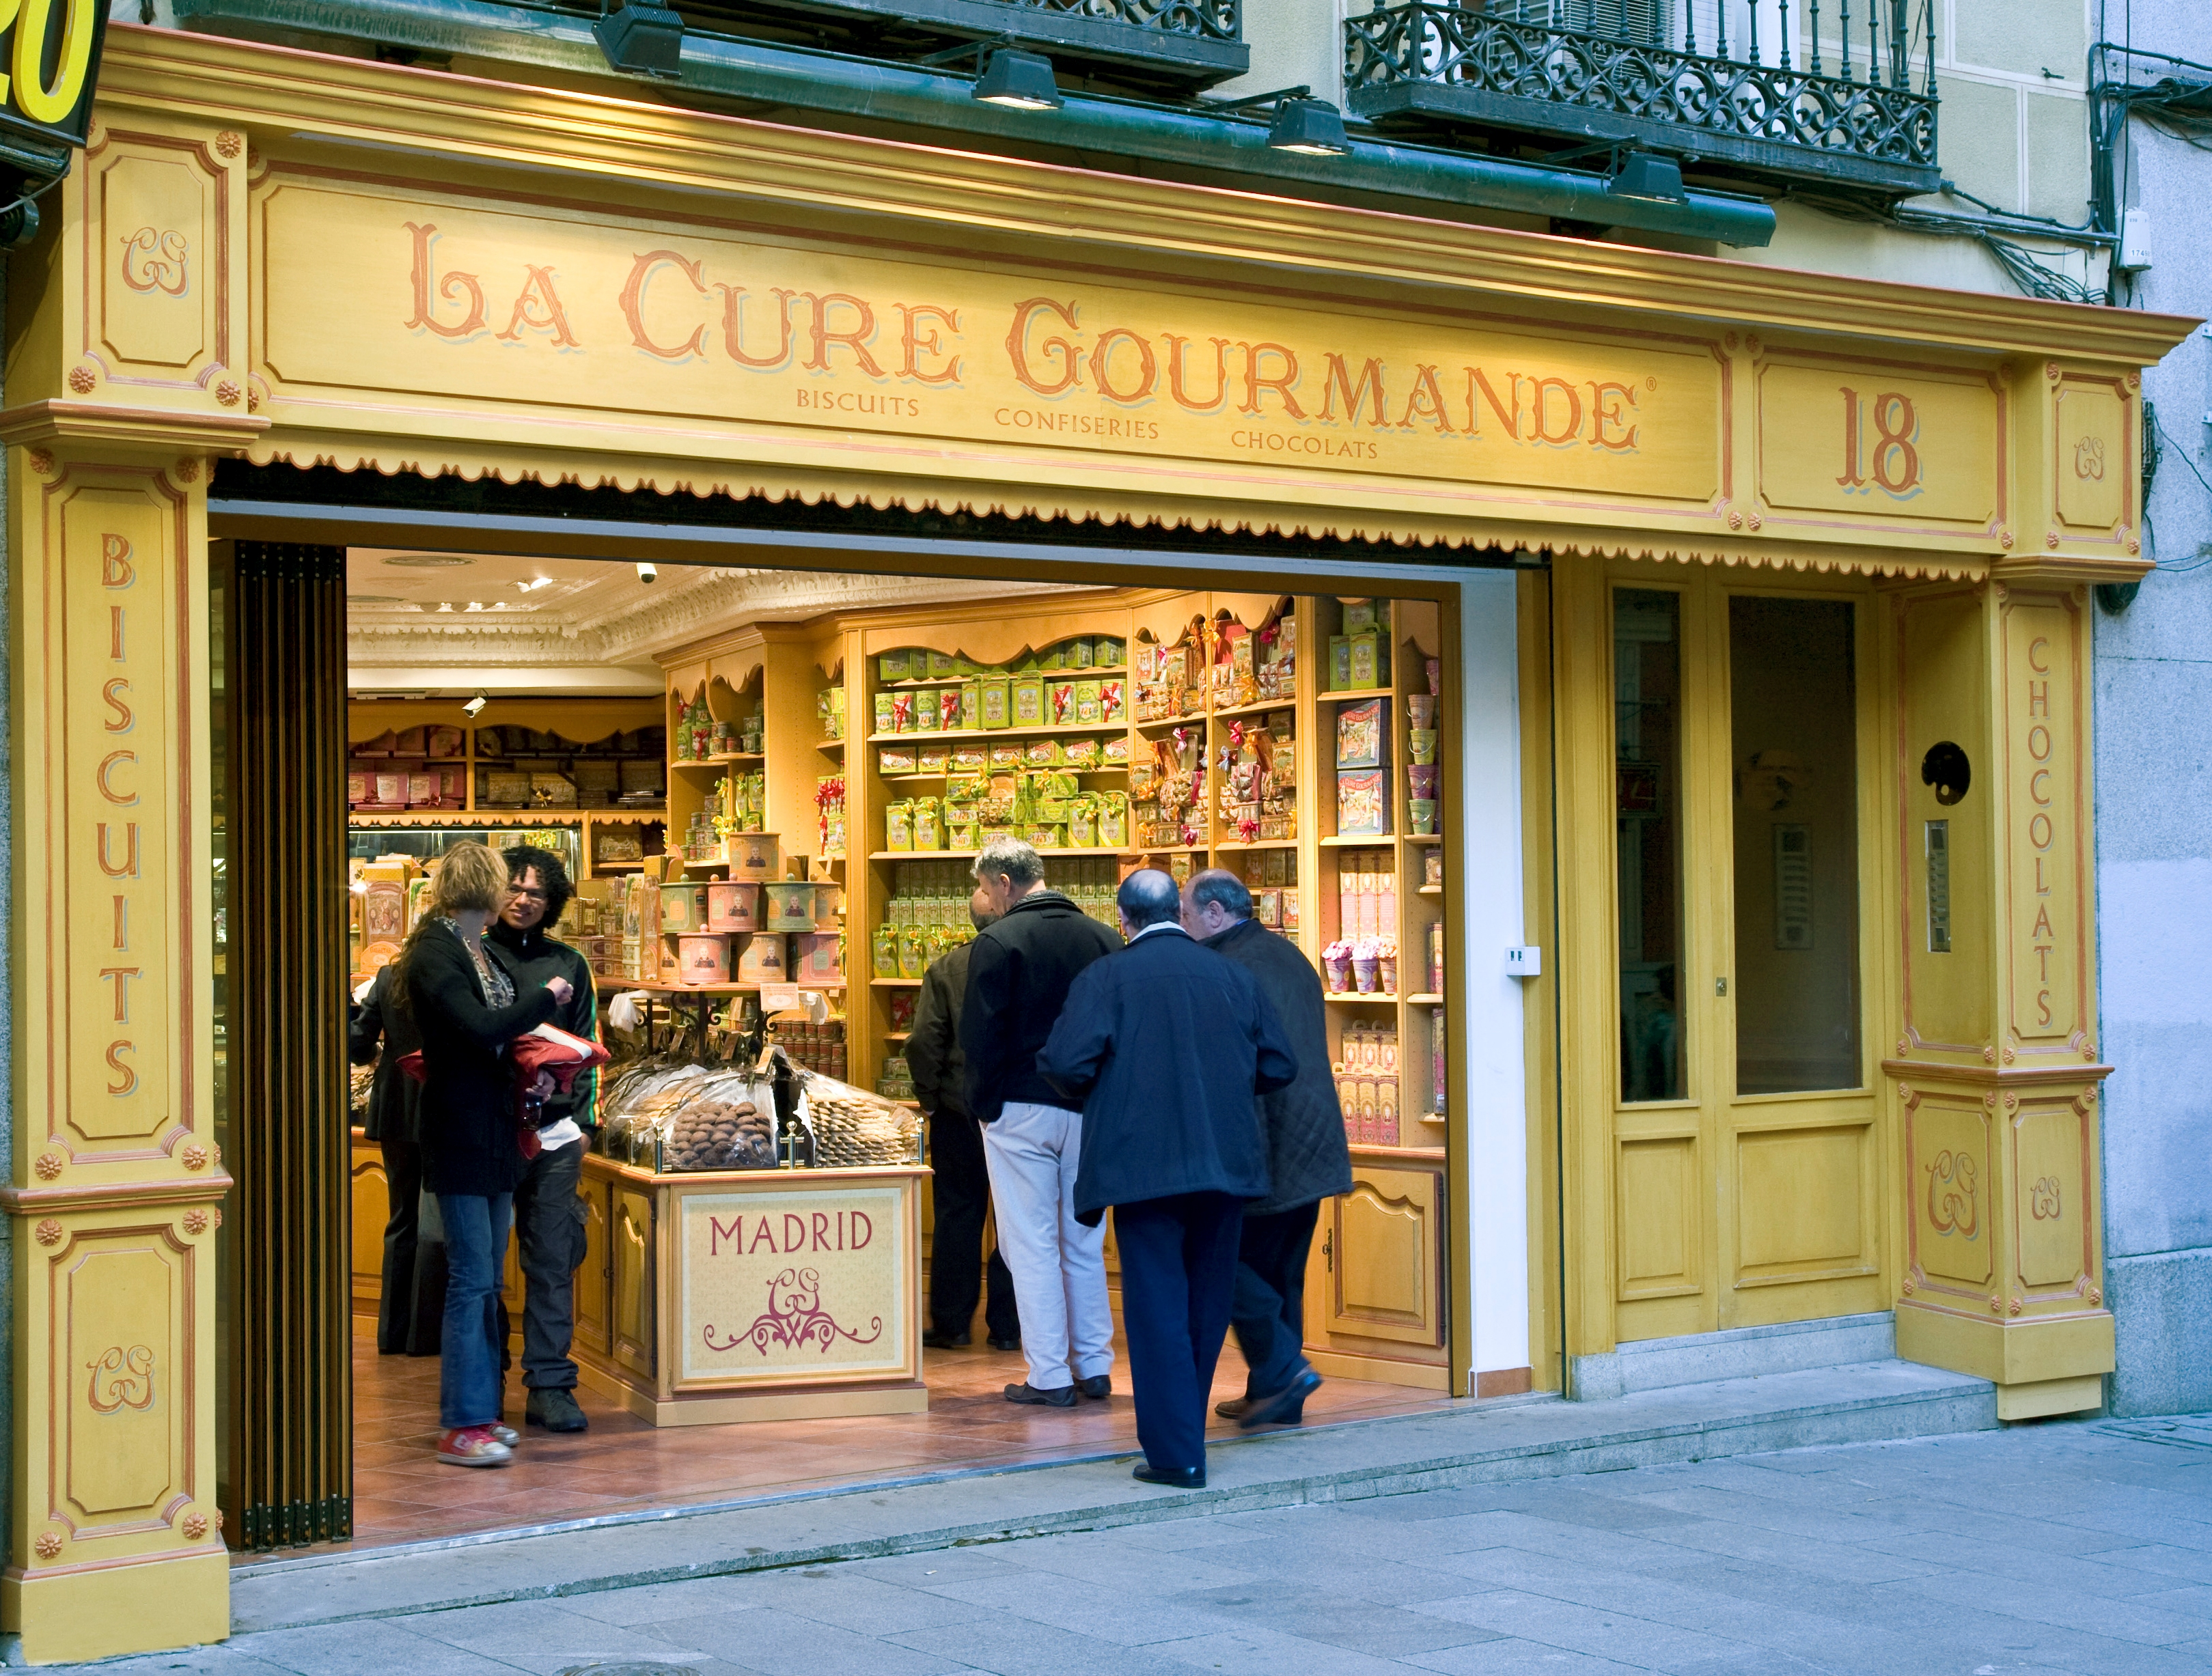 m.La Cure Gourmande: Entrañable, exquisito